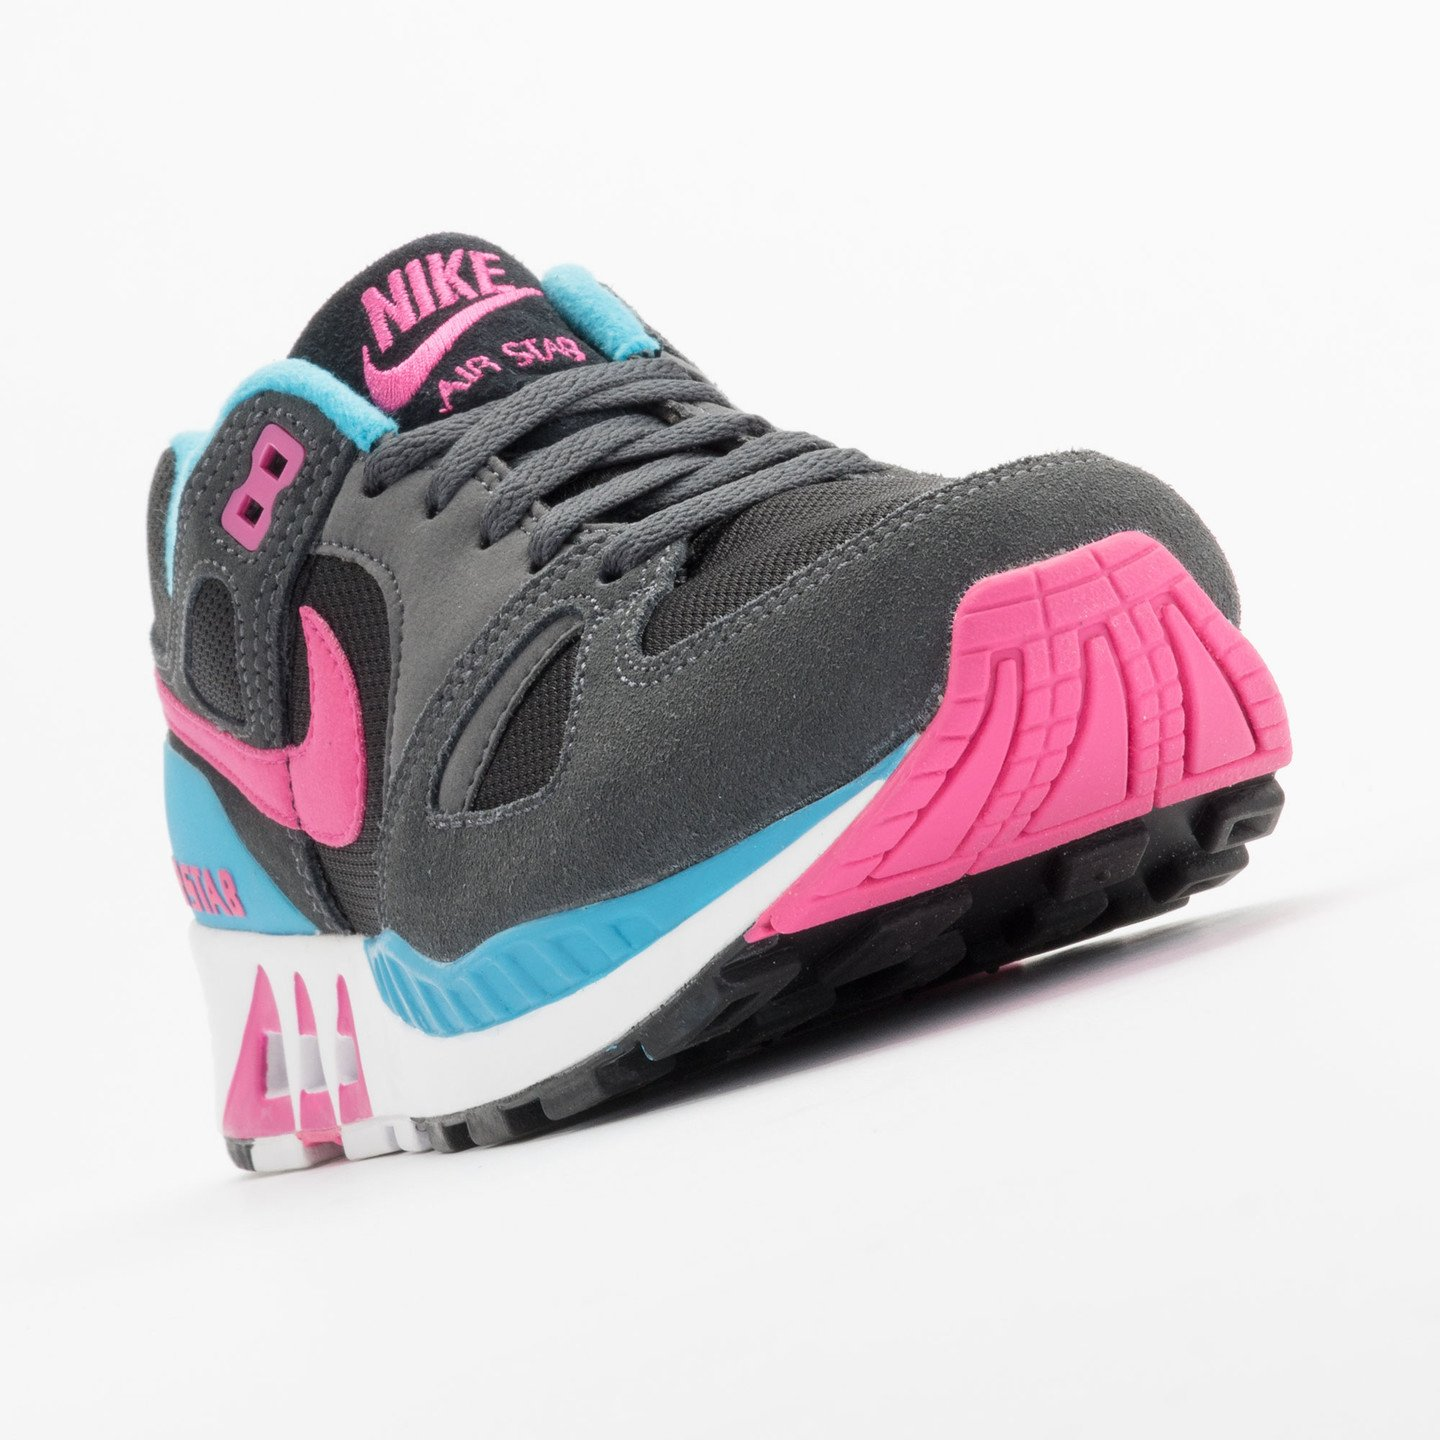 Nike Air Stab Black/Hot Pink-Anthrct-Bl Lgn 312451-004-45